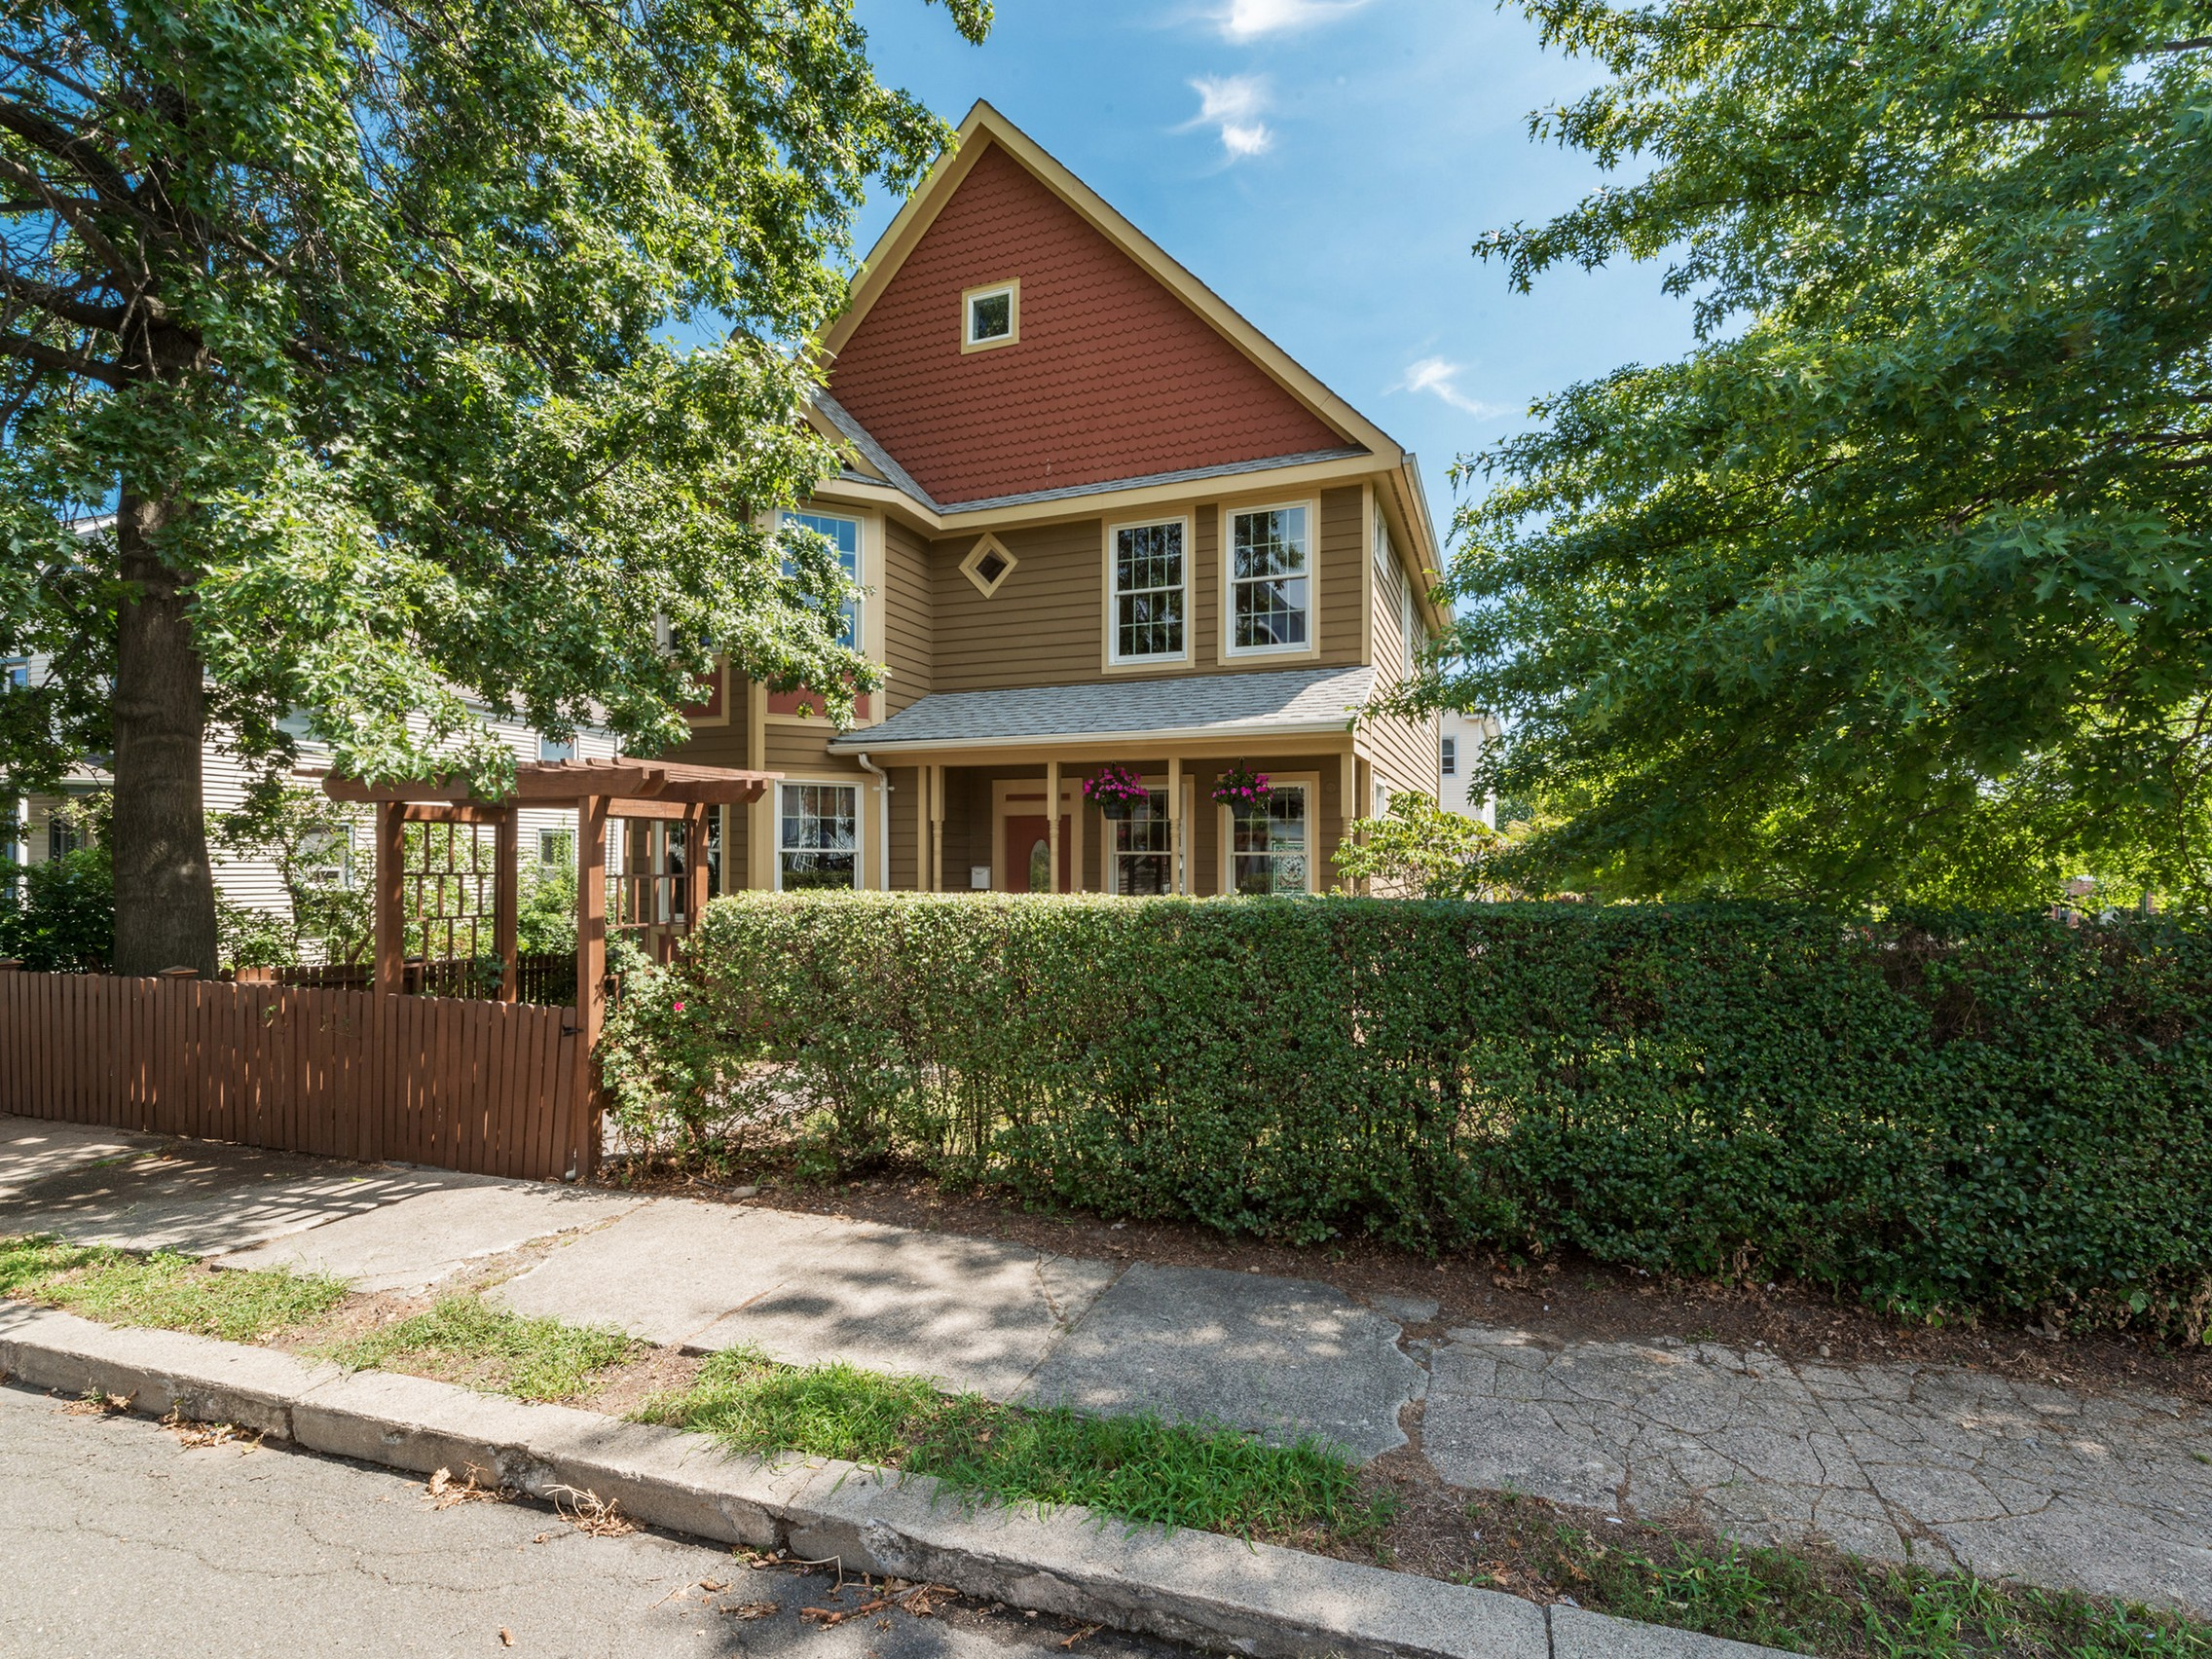 Single Family Home for Sale at Unique Victorian 15 Summit Street Nyack, New York 10960 United States